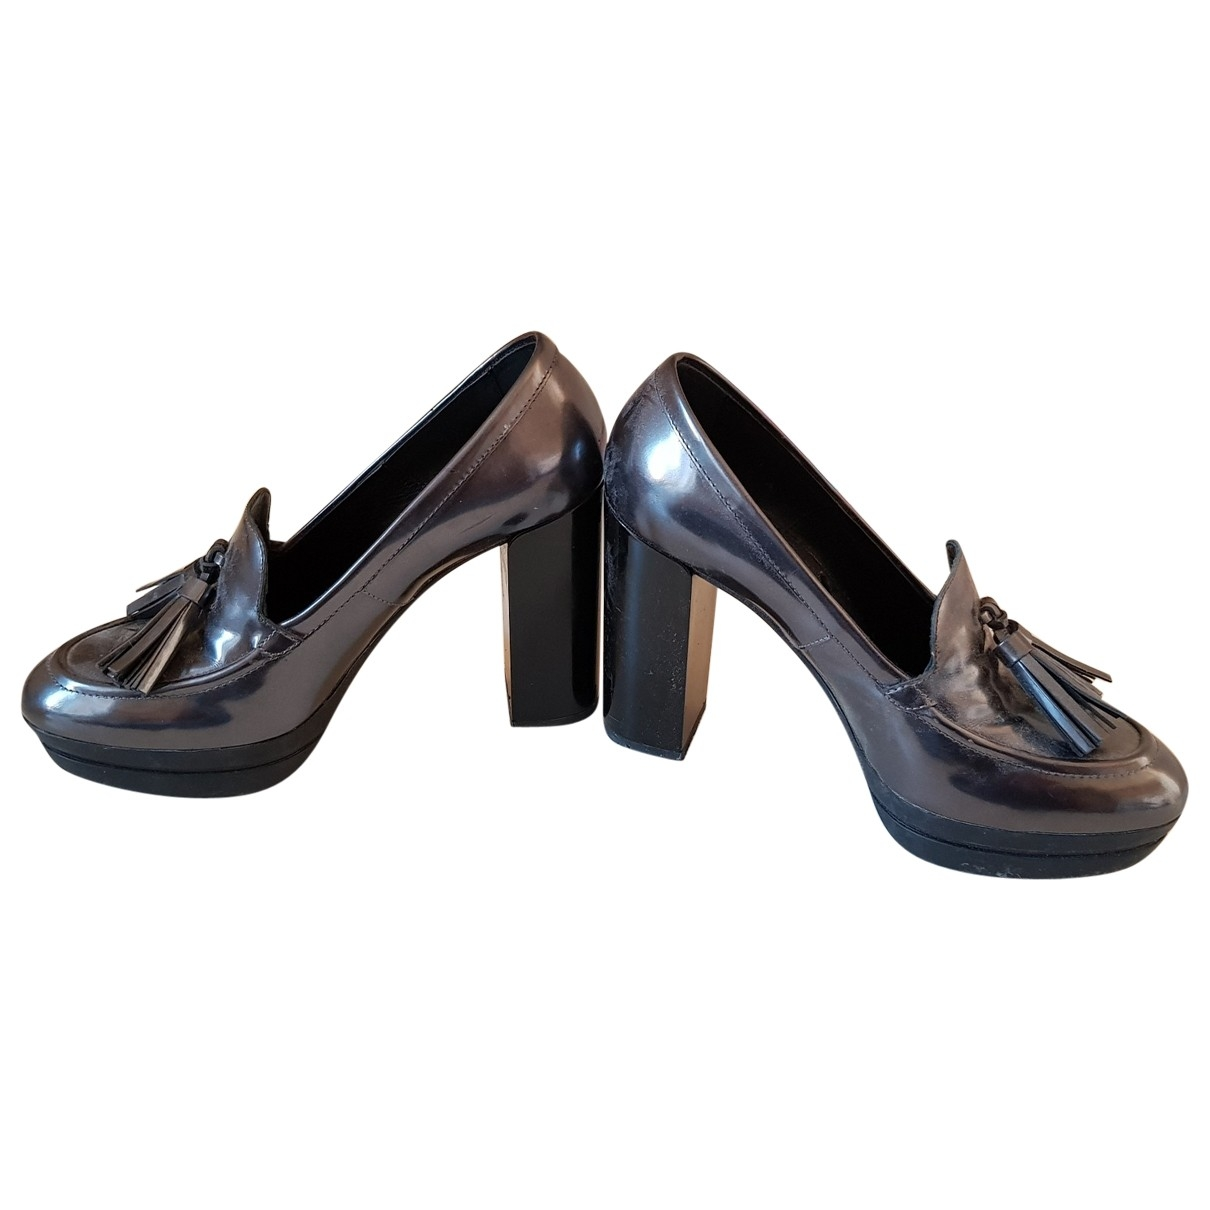 Hogan N Grey Leather Heels for Women 38 EU